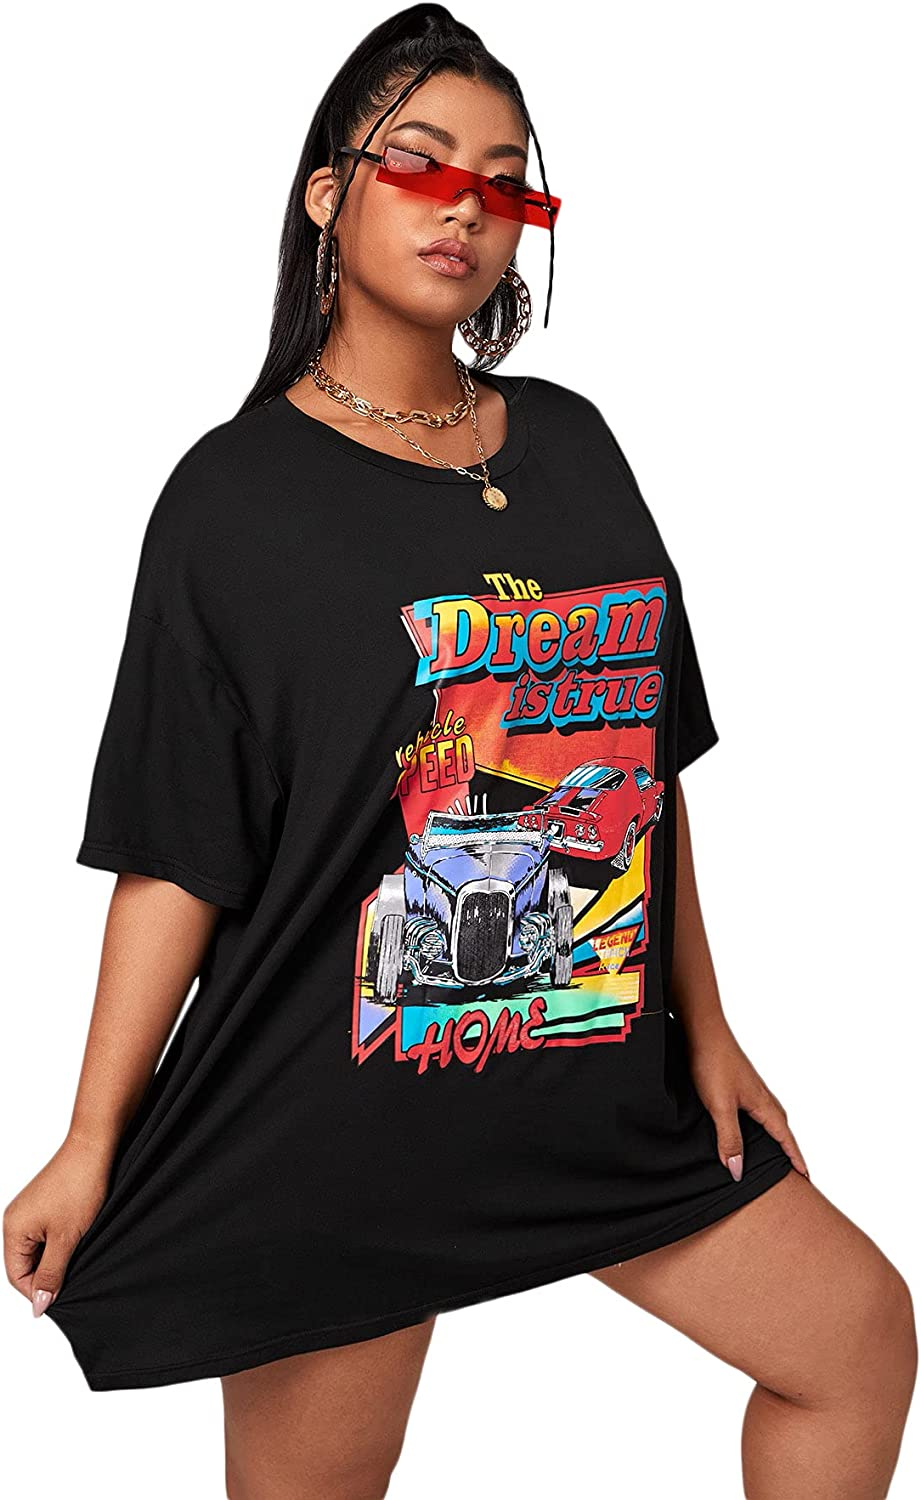 SOLY HUX Women's Car & Letter Graphic Print T-Shirt Casual Summer Short Sleeve Top